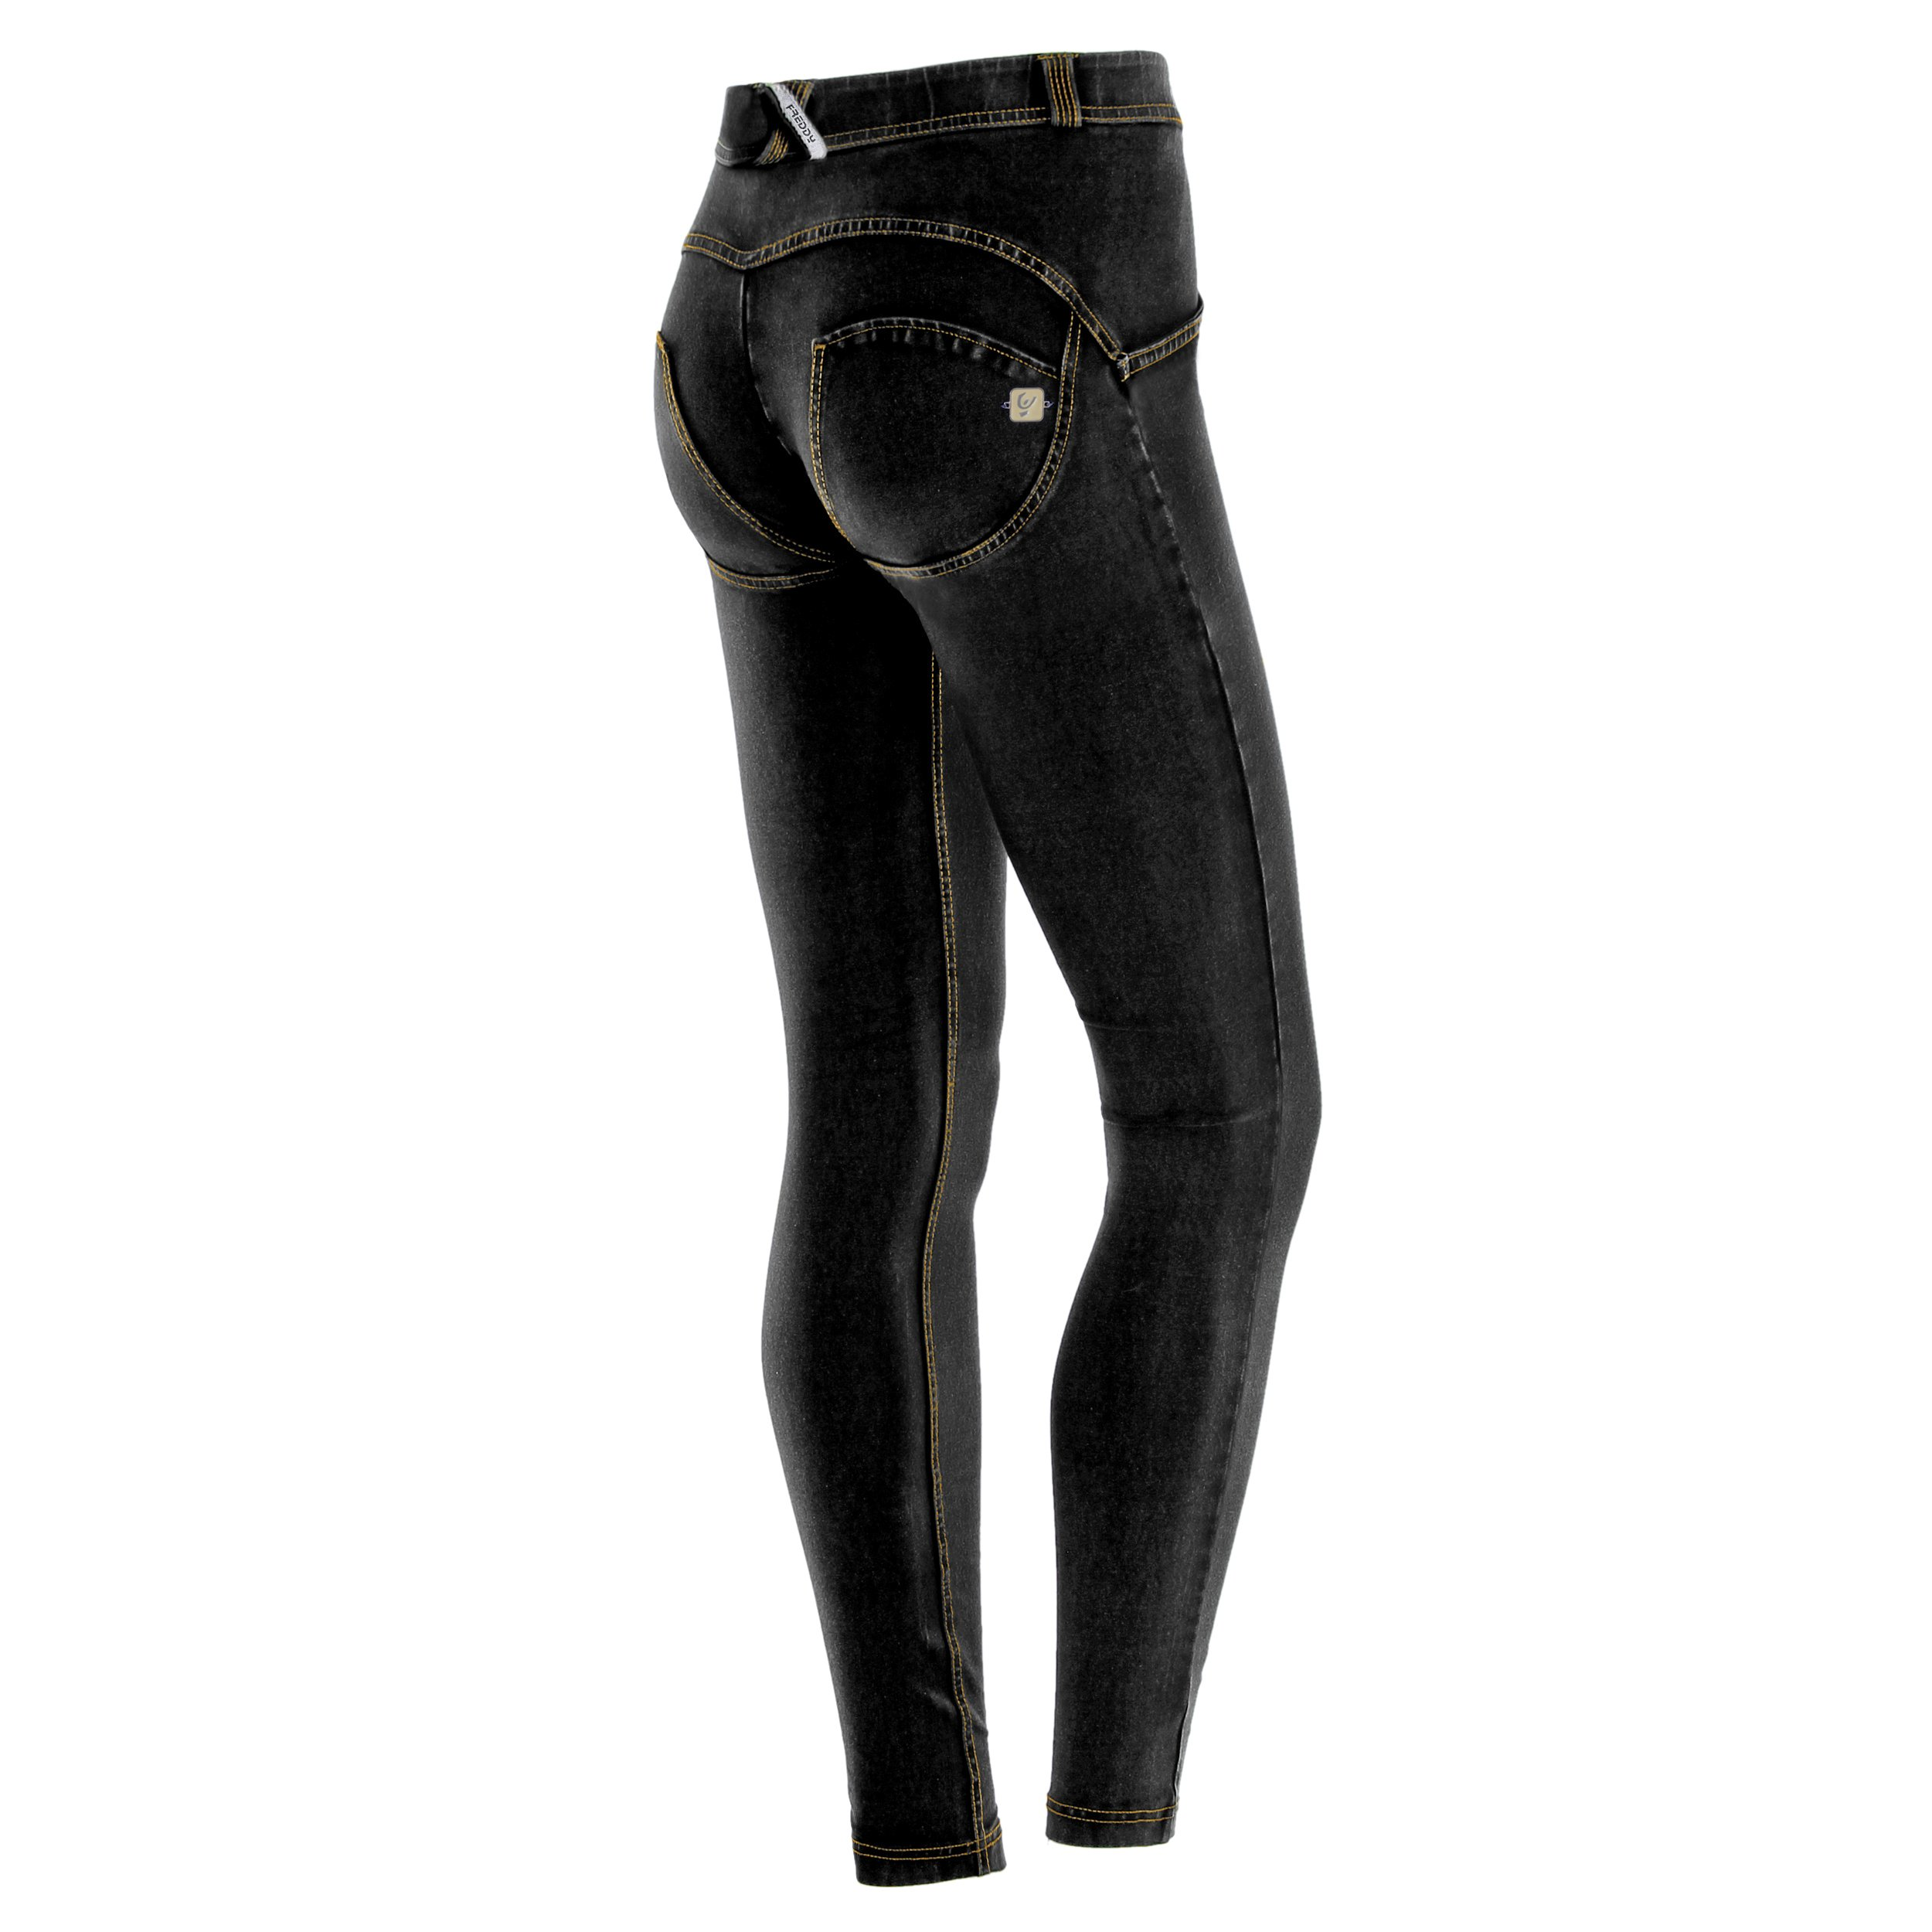 Freddy WR.UP Regular Rise Denim Skinny Jeans for Women, Butt Lifting, Signature Shaping Pants, Sexy Push Up Pants